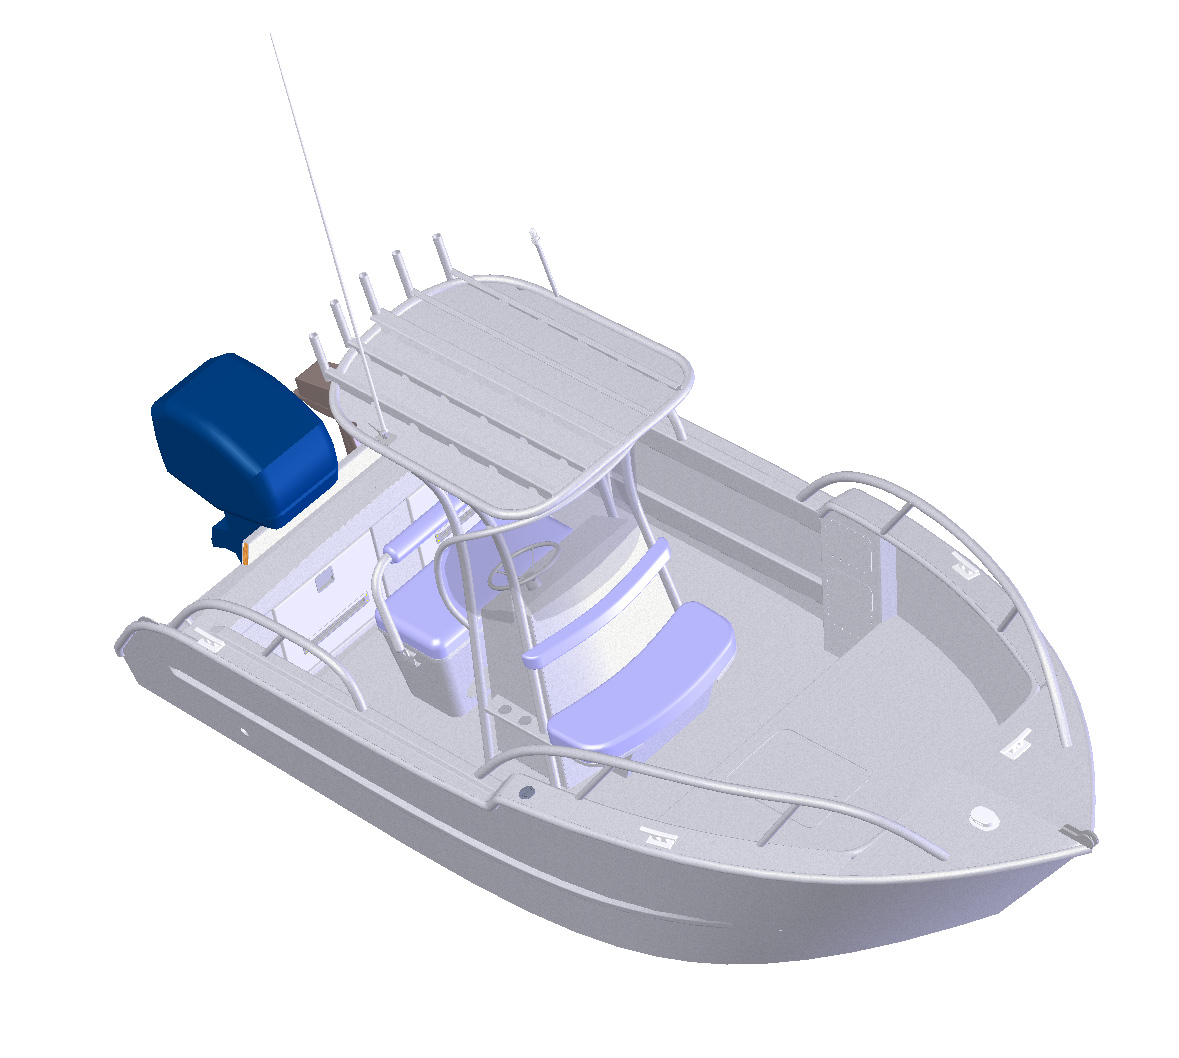 Aluminum boat console plans | Estars